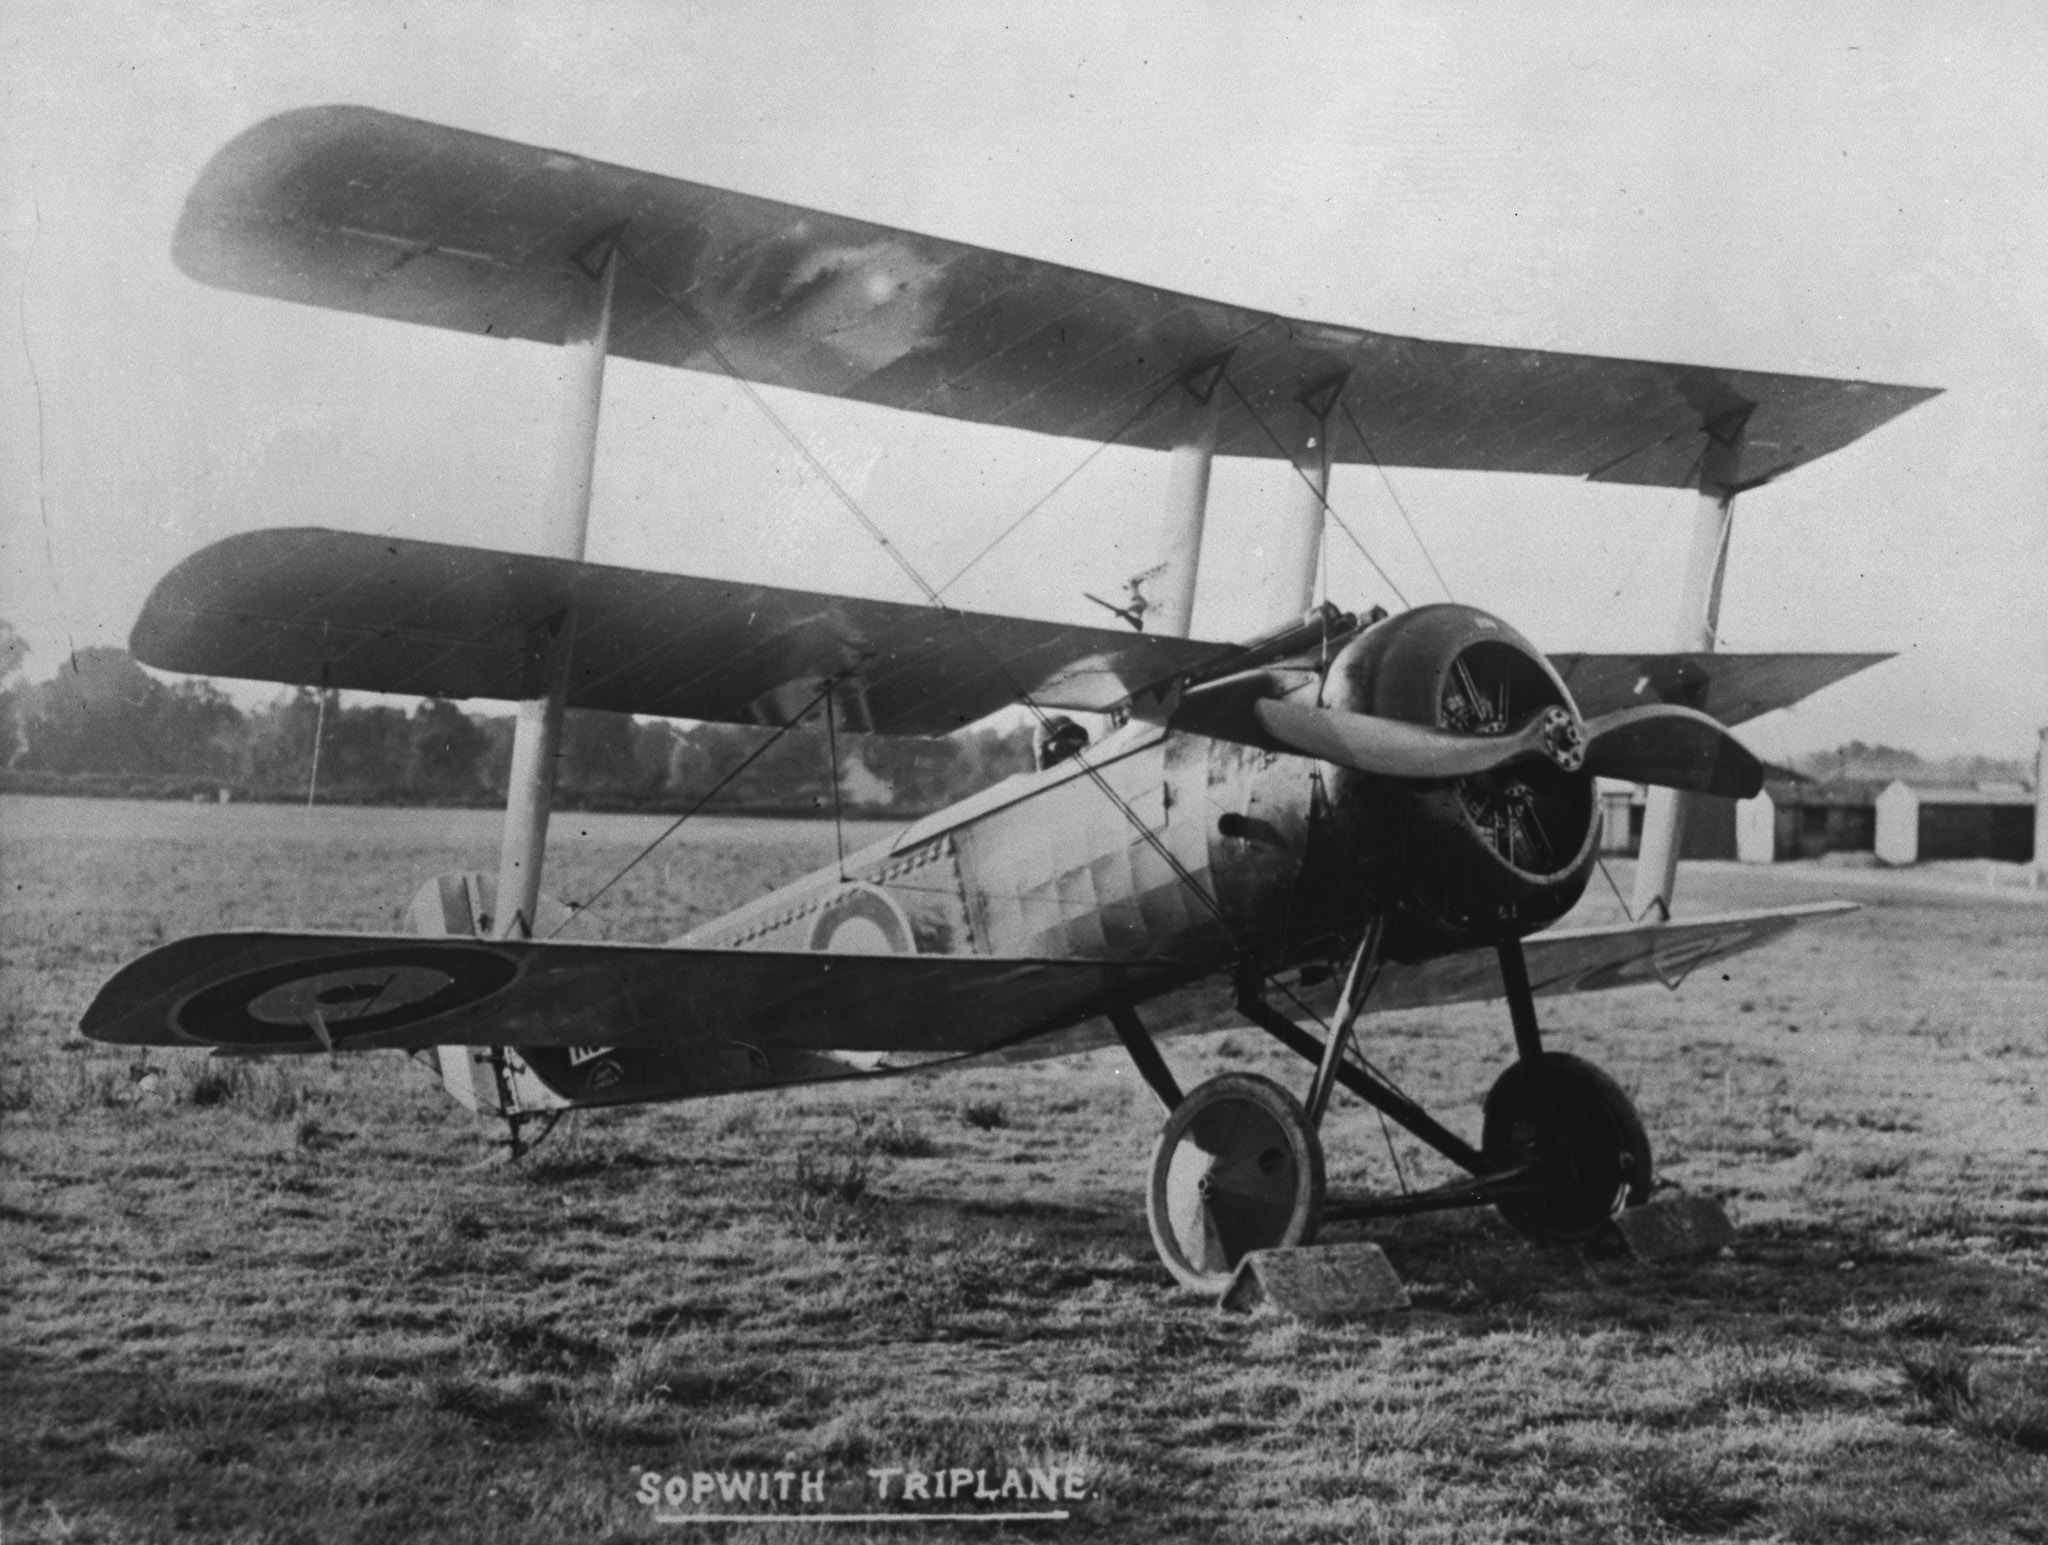 Un triplan Sopwith. Les 1er, 8e et 10e Escadrons du Royal Naval Air Service, équipés de triplans Sopwith, ont été mis temporairement à la disposition du Royal Flying Corps pendant la période qui a mené à la bataille de la crête de Vimy. PHOTO : H-493, Archives du MDN